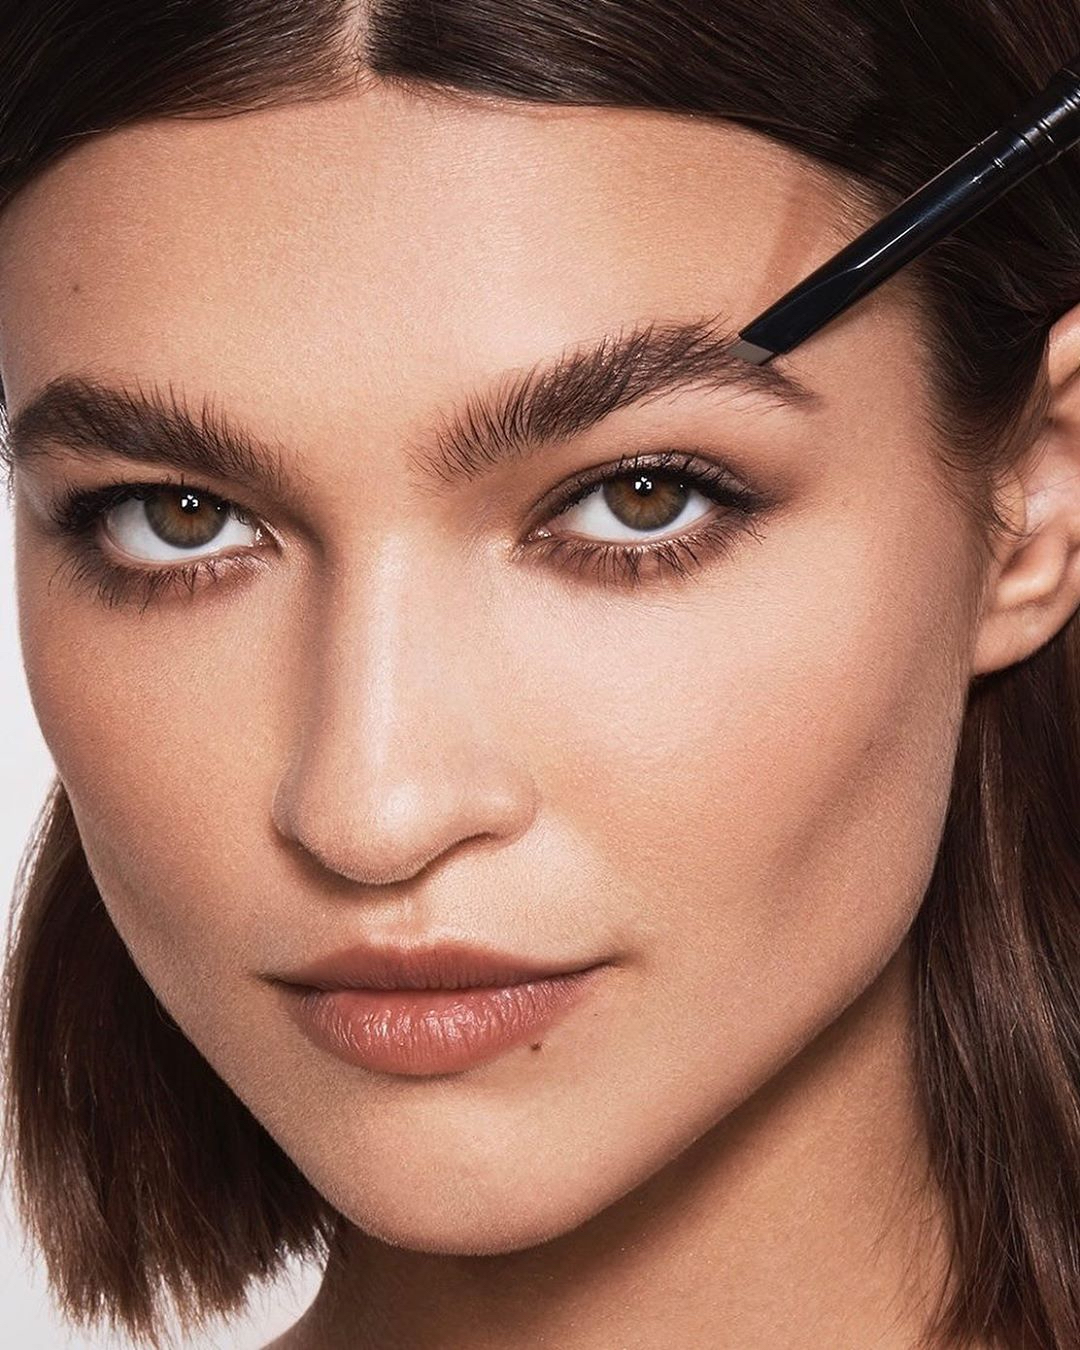 chanel temple hourglass brow tips